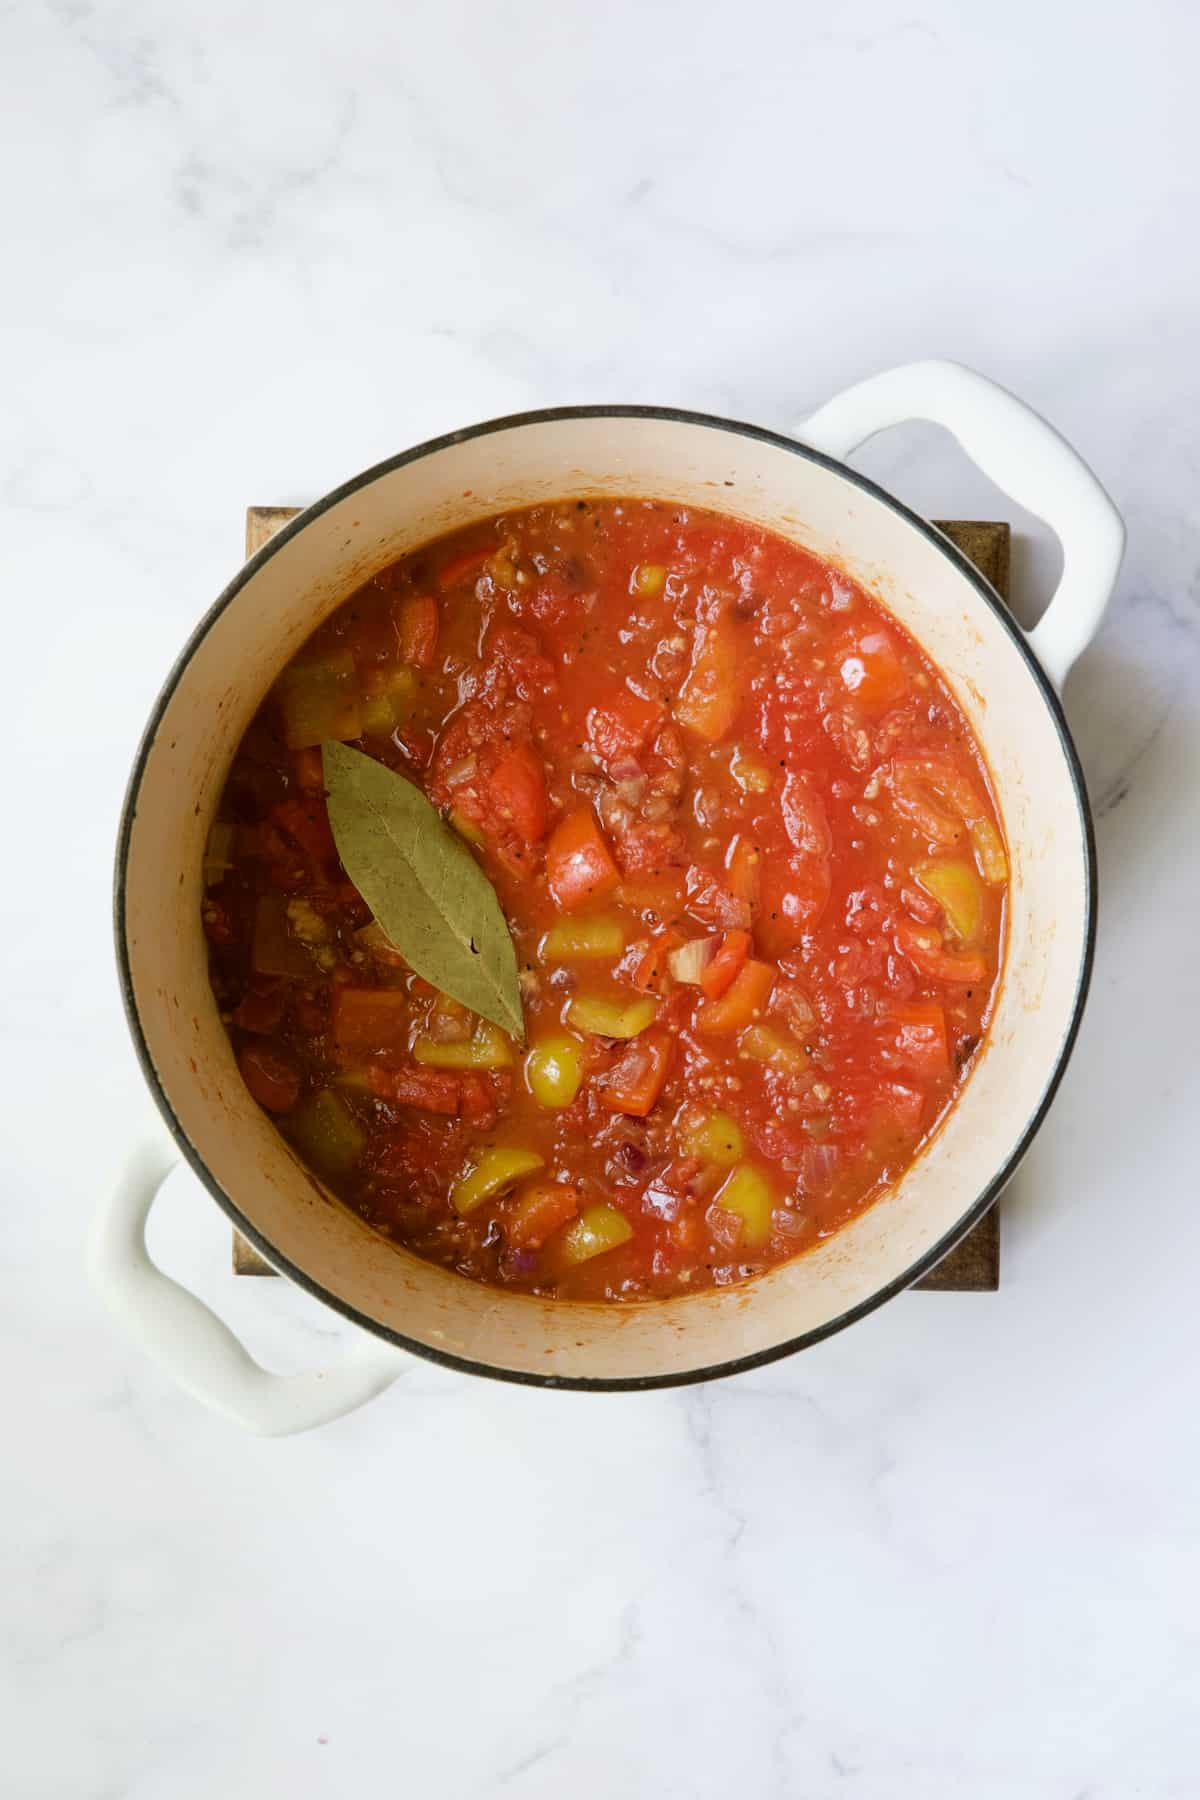 Process photo of ratatouille after being simmered.